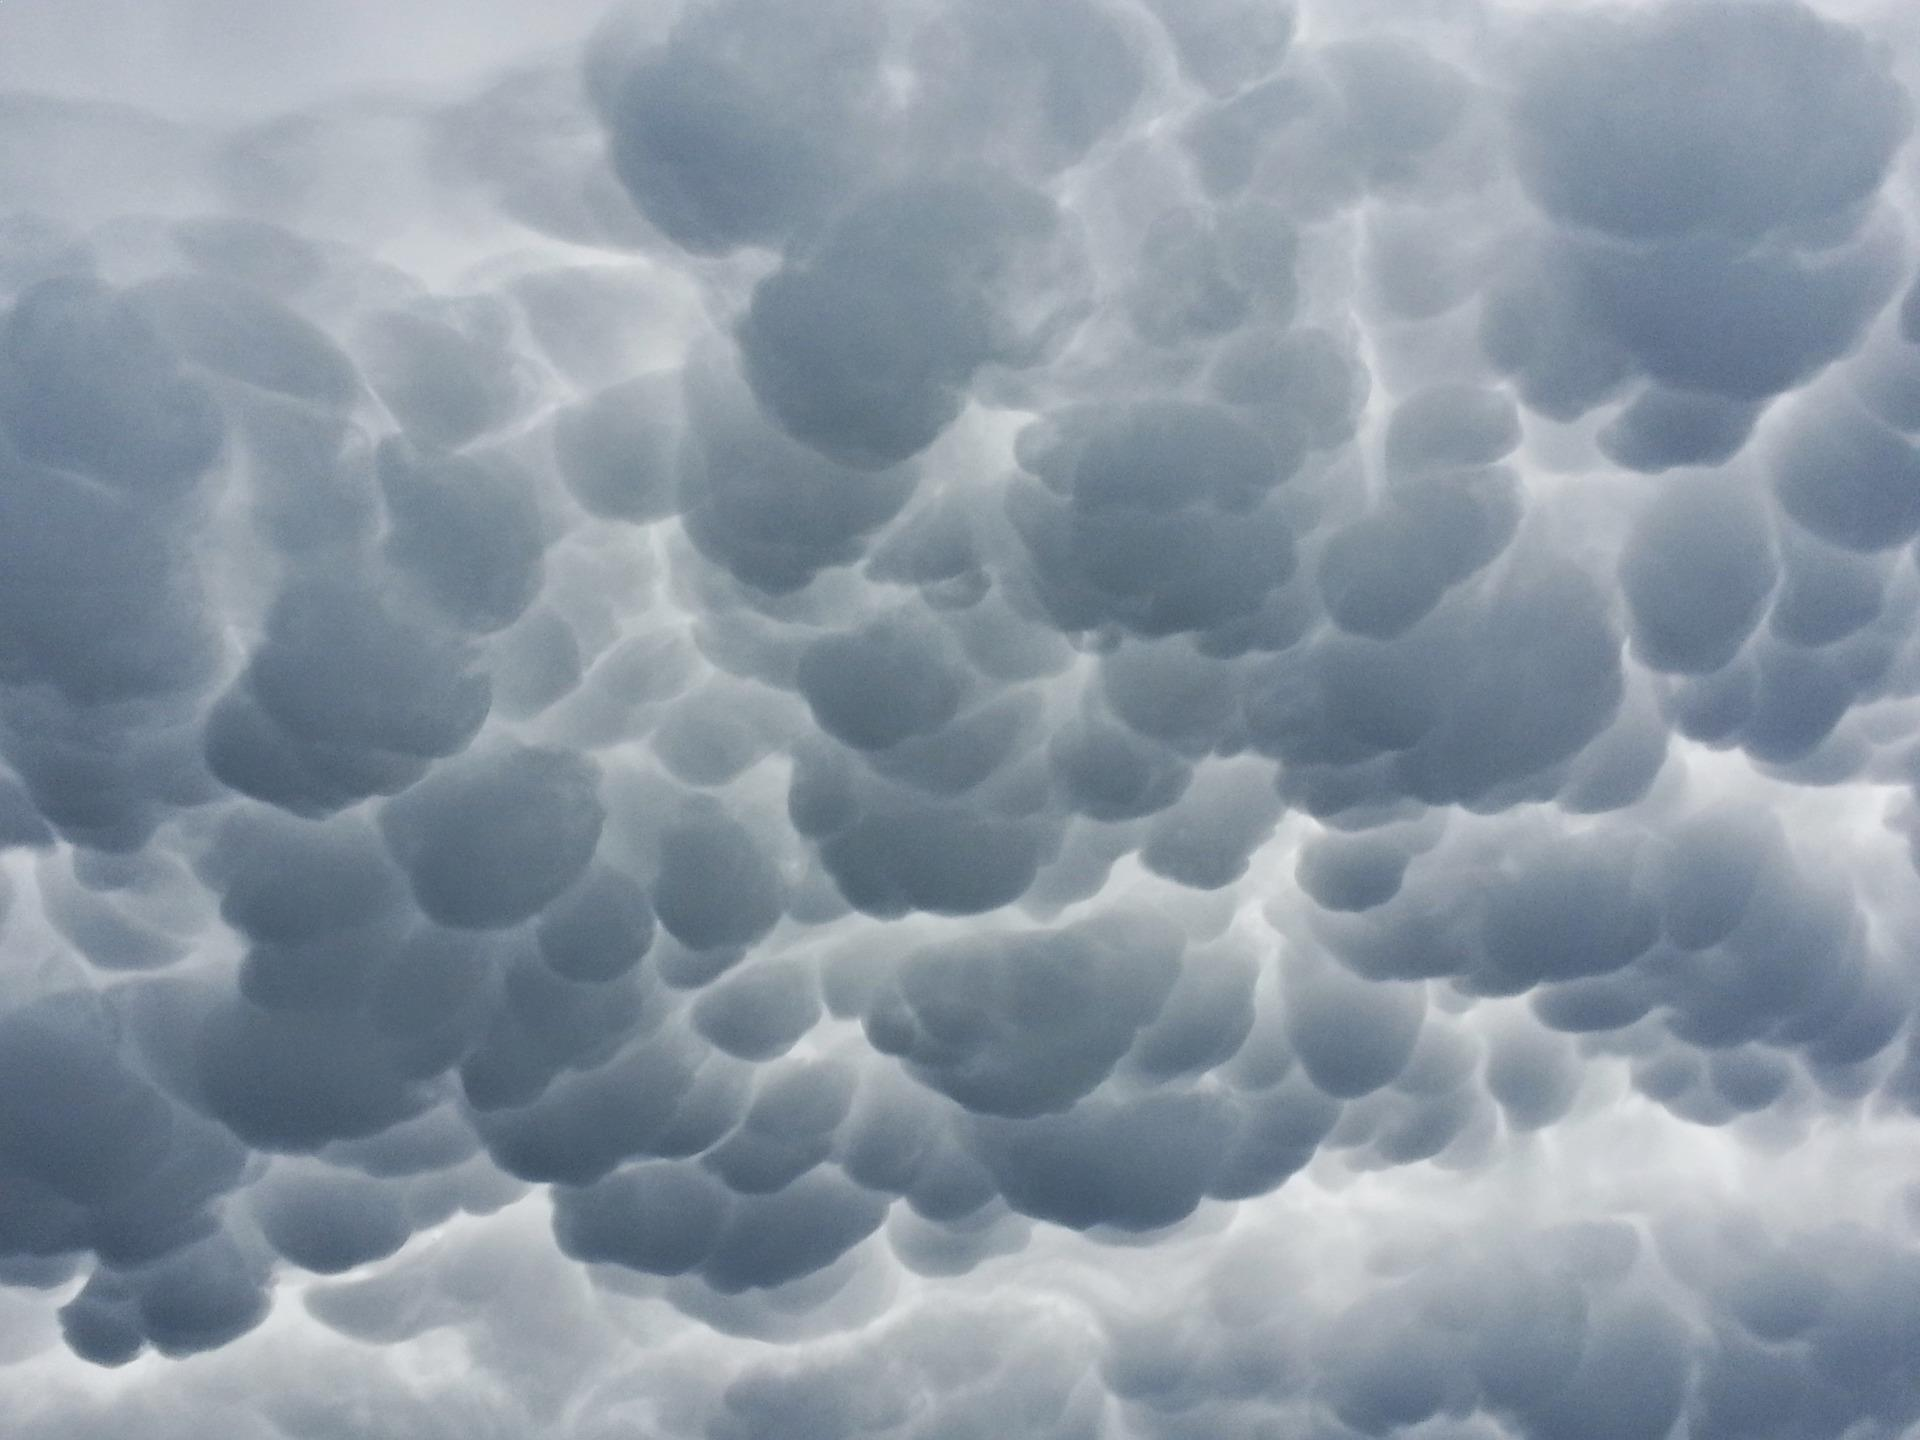 10 Most Astonishing and Unbelievable Cloud Formations